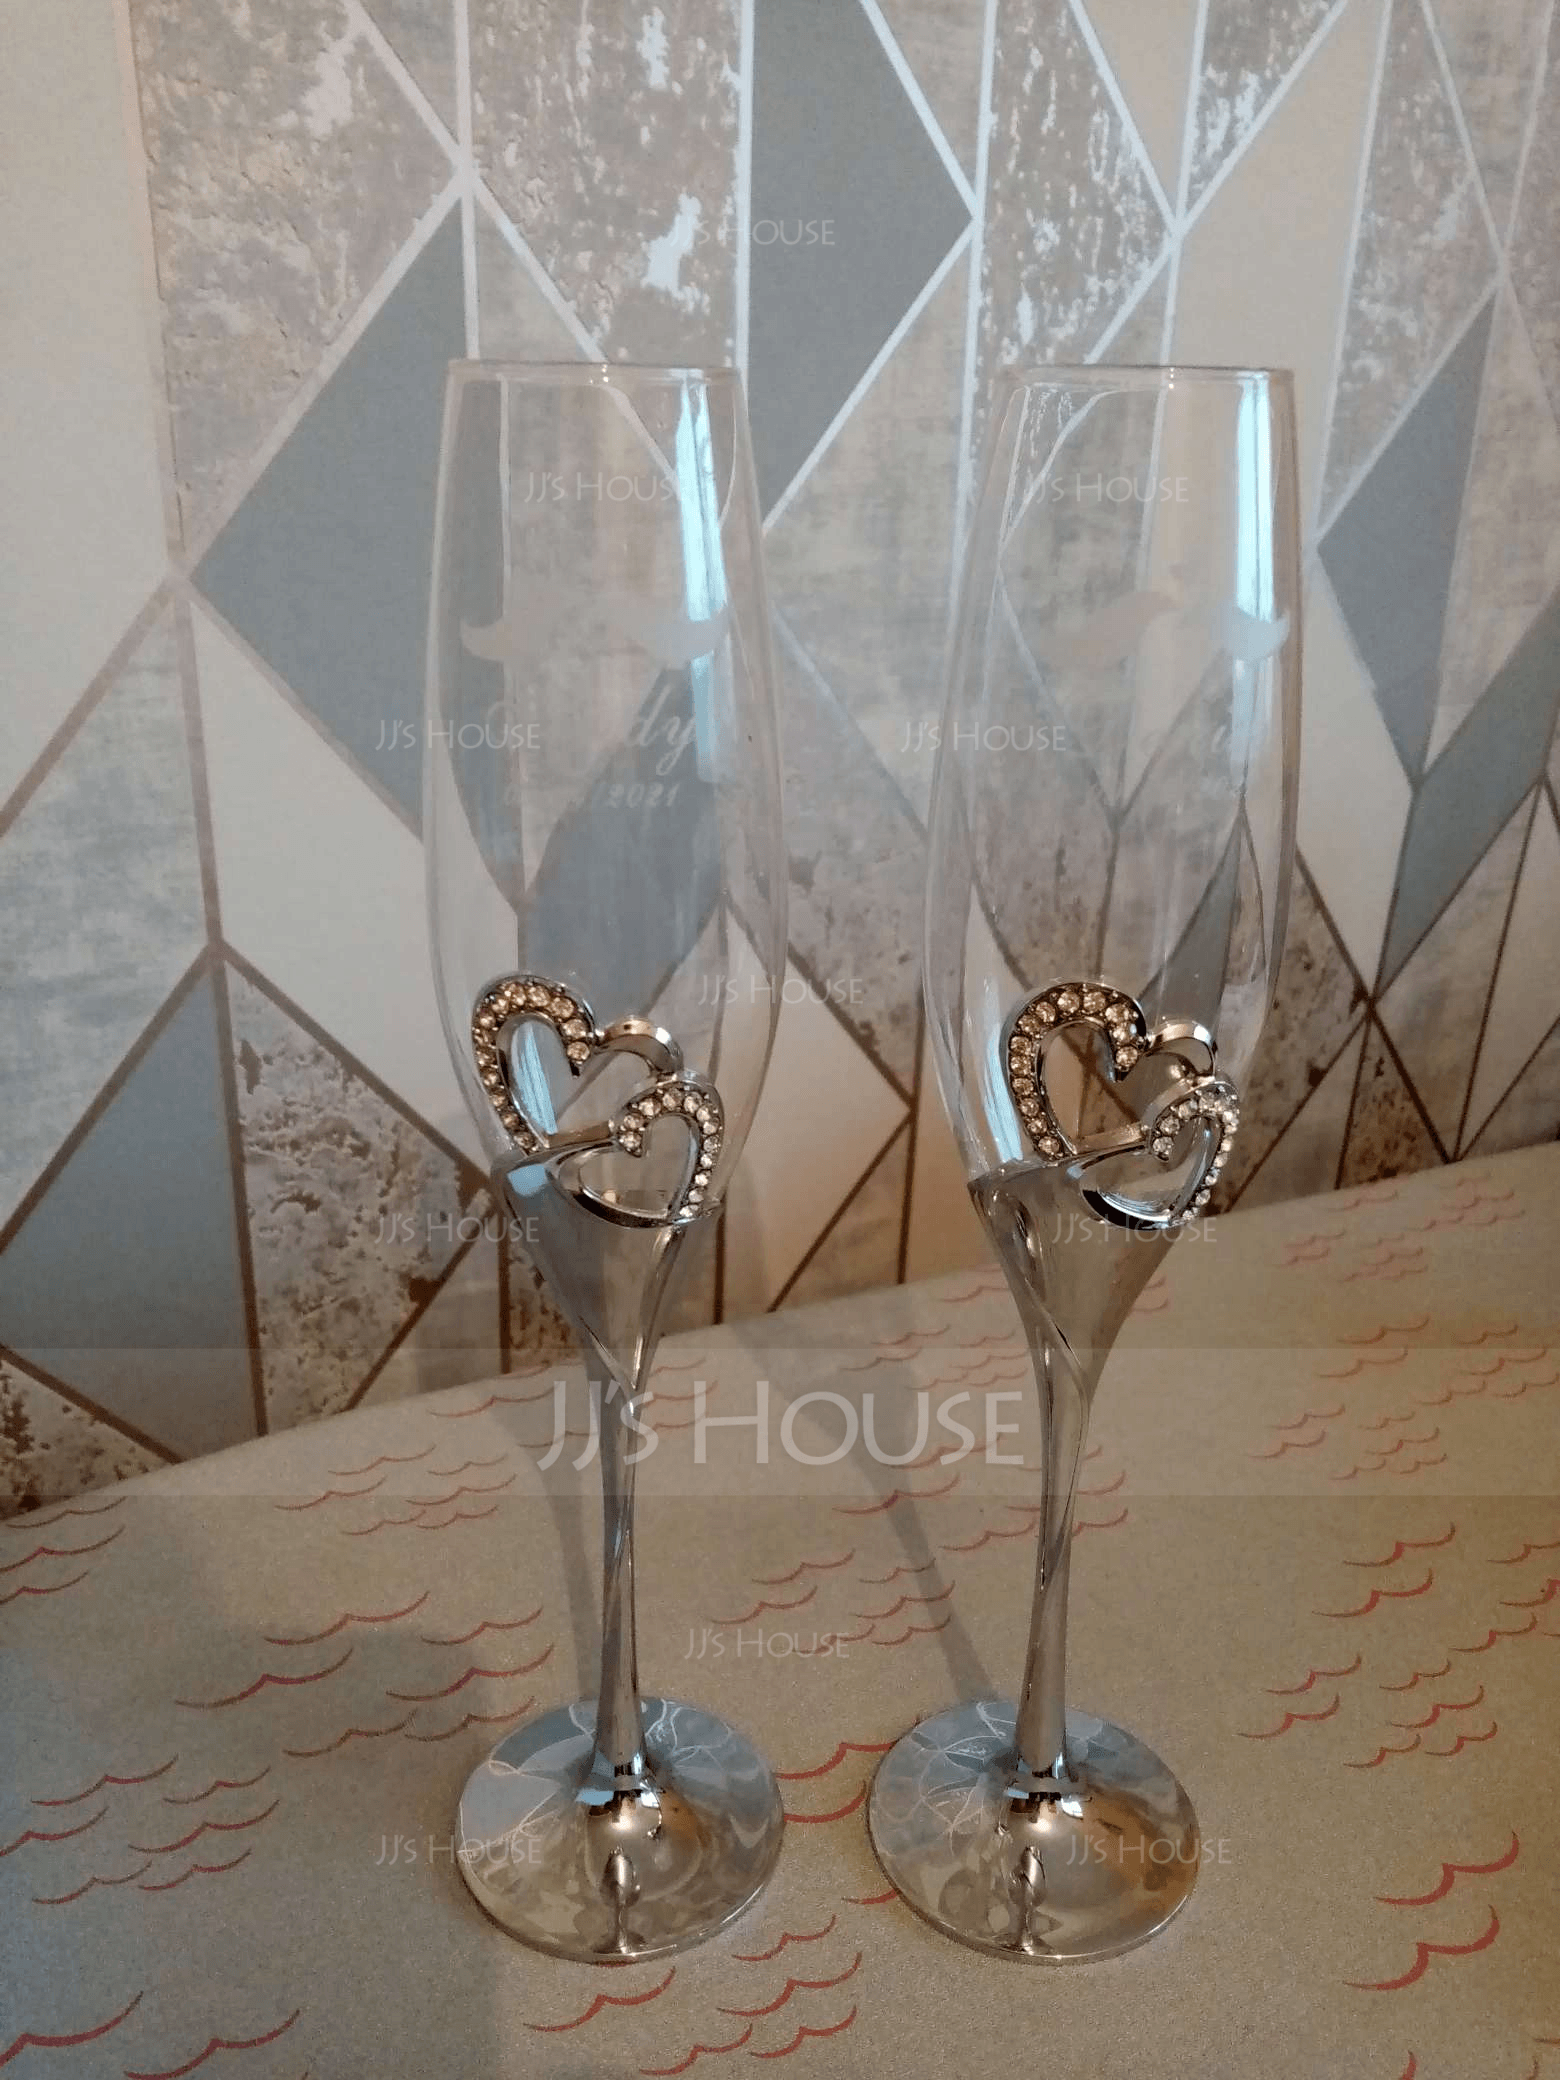 Groom Gifts - Personalized Elegant Alloy Glass Champagne Flutes (Set of 2)